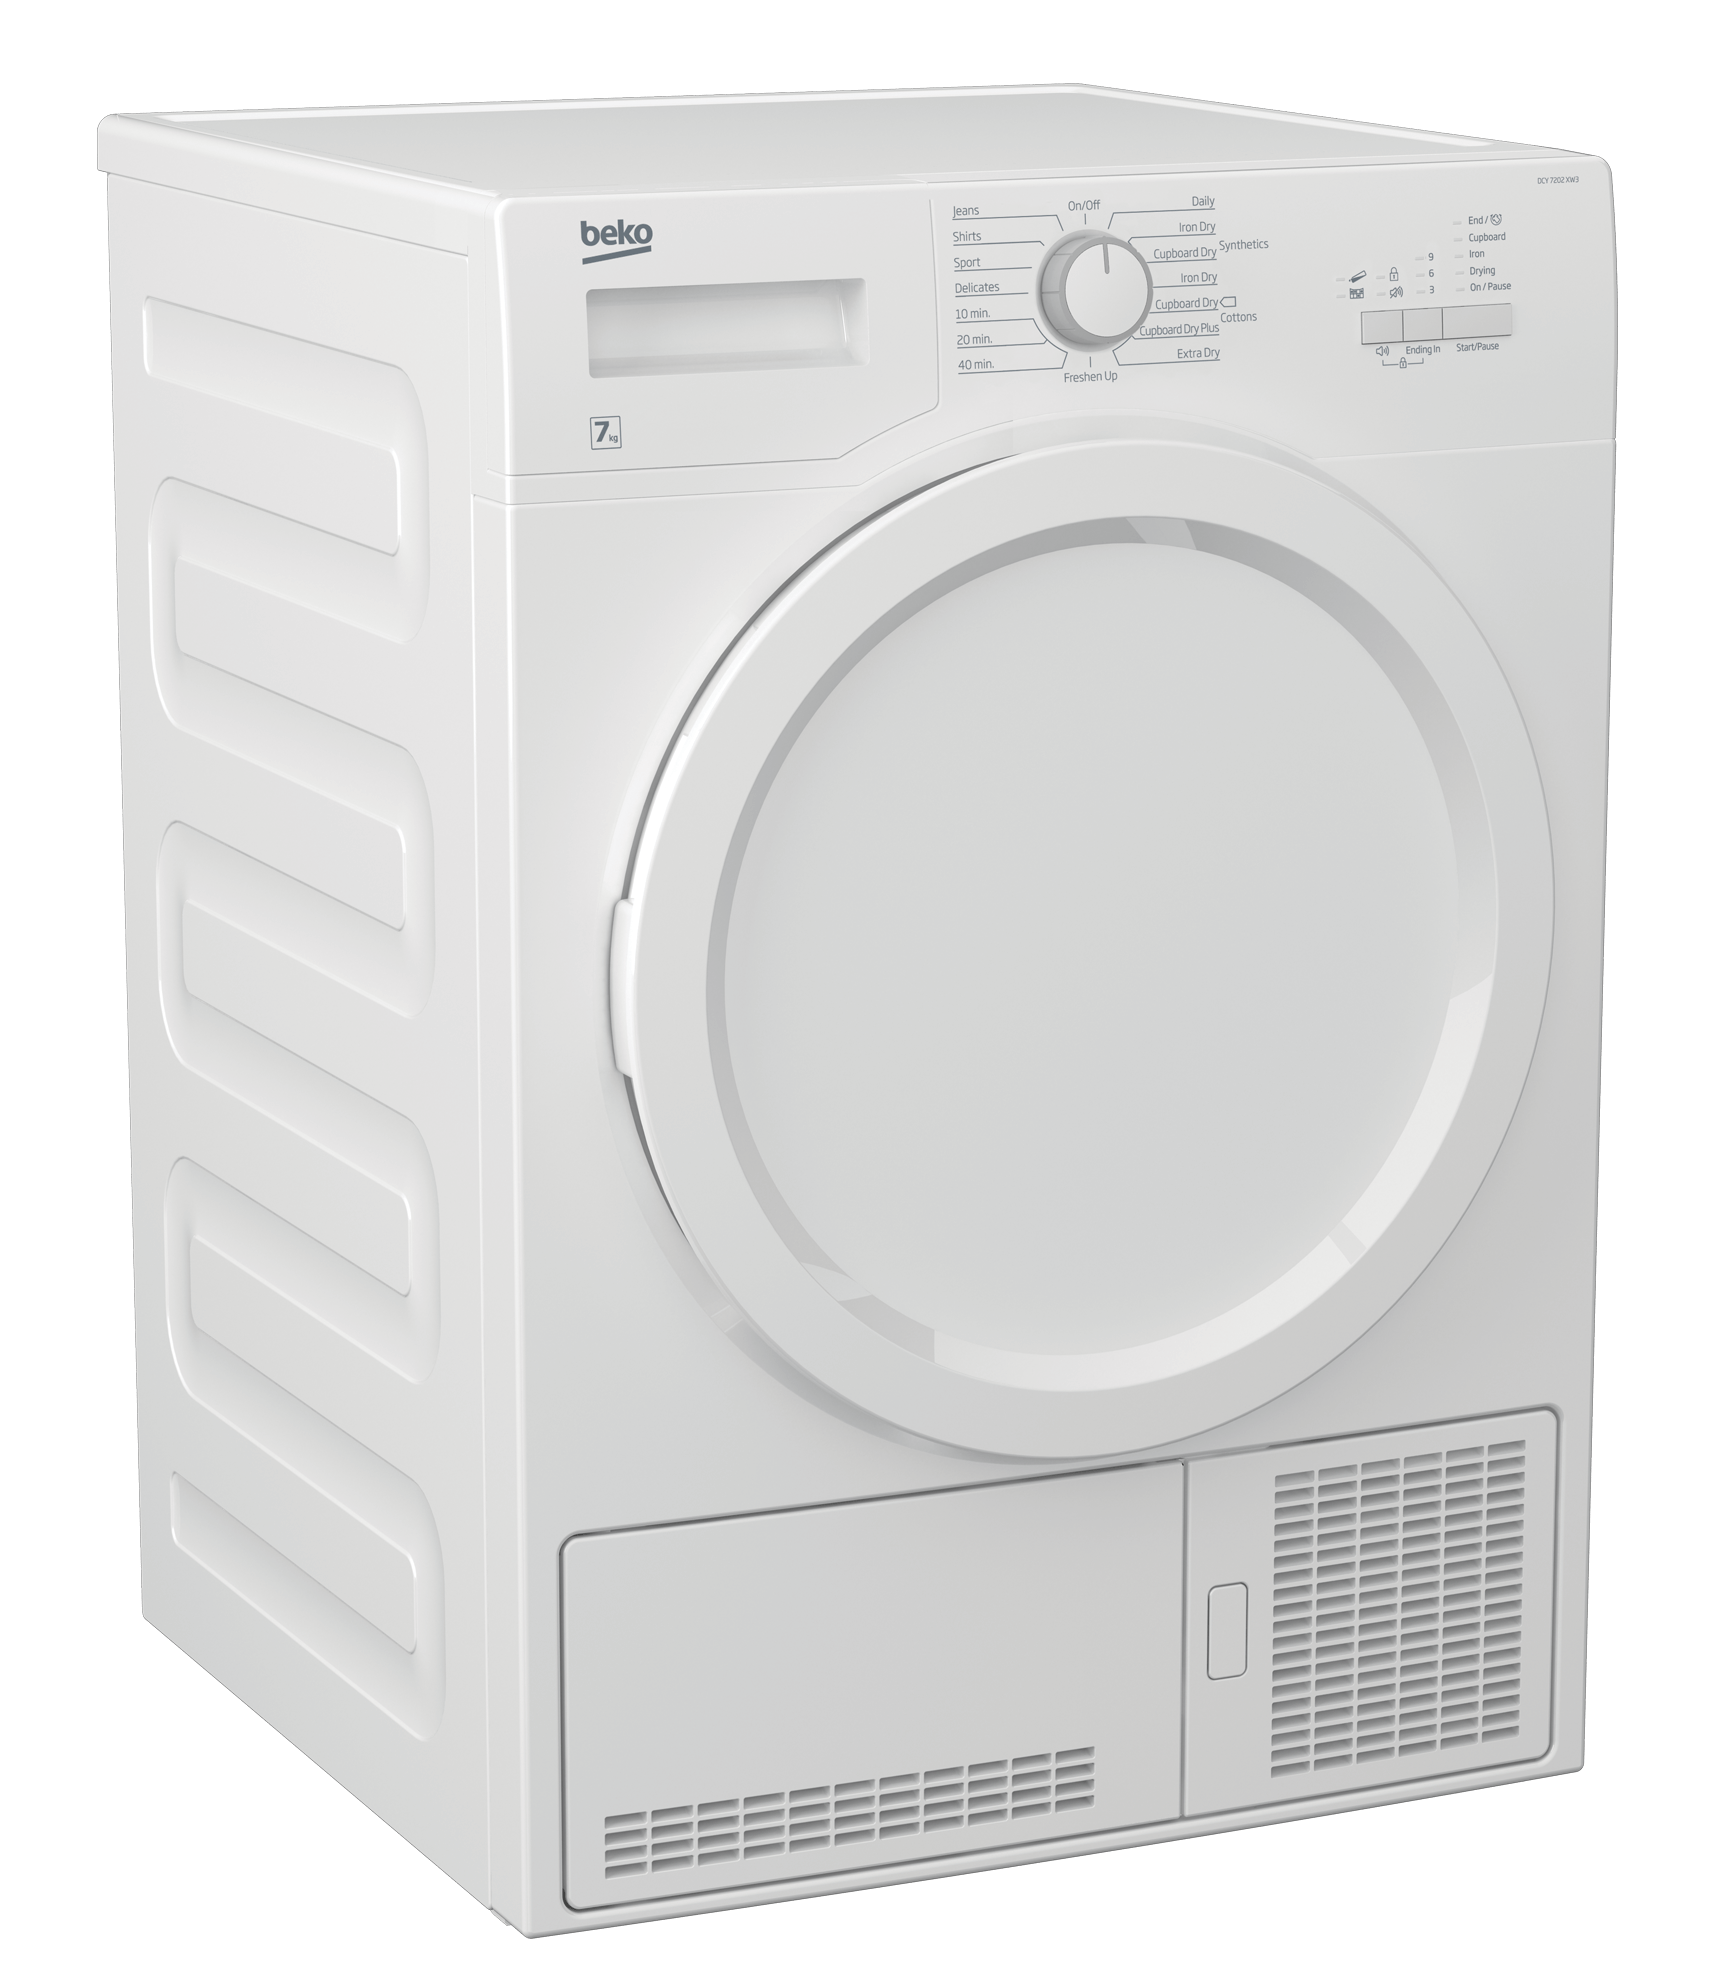 Tumble Dryer (Condenser, 7 kg) DCY7202XW3